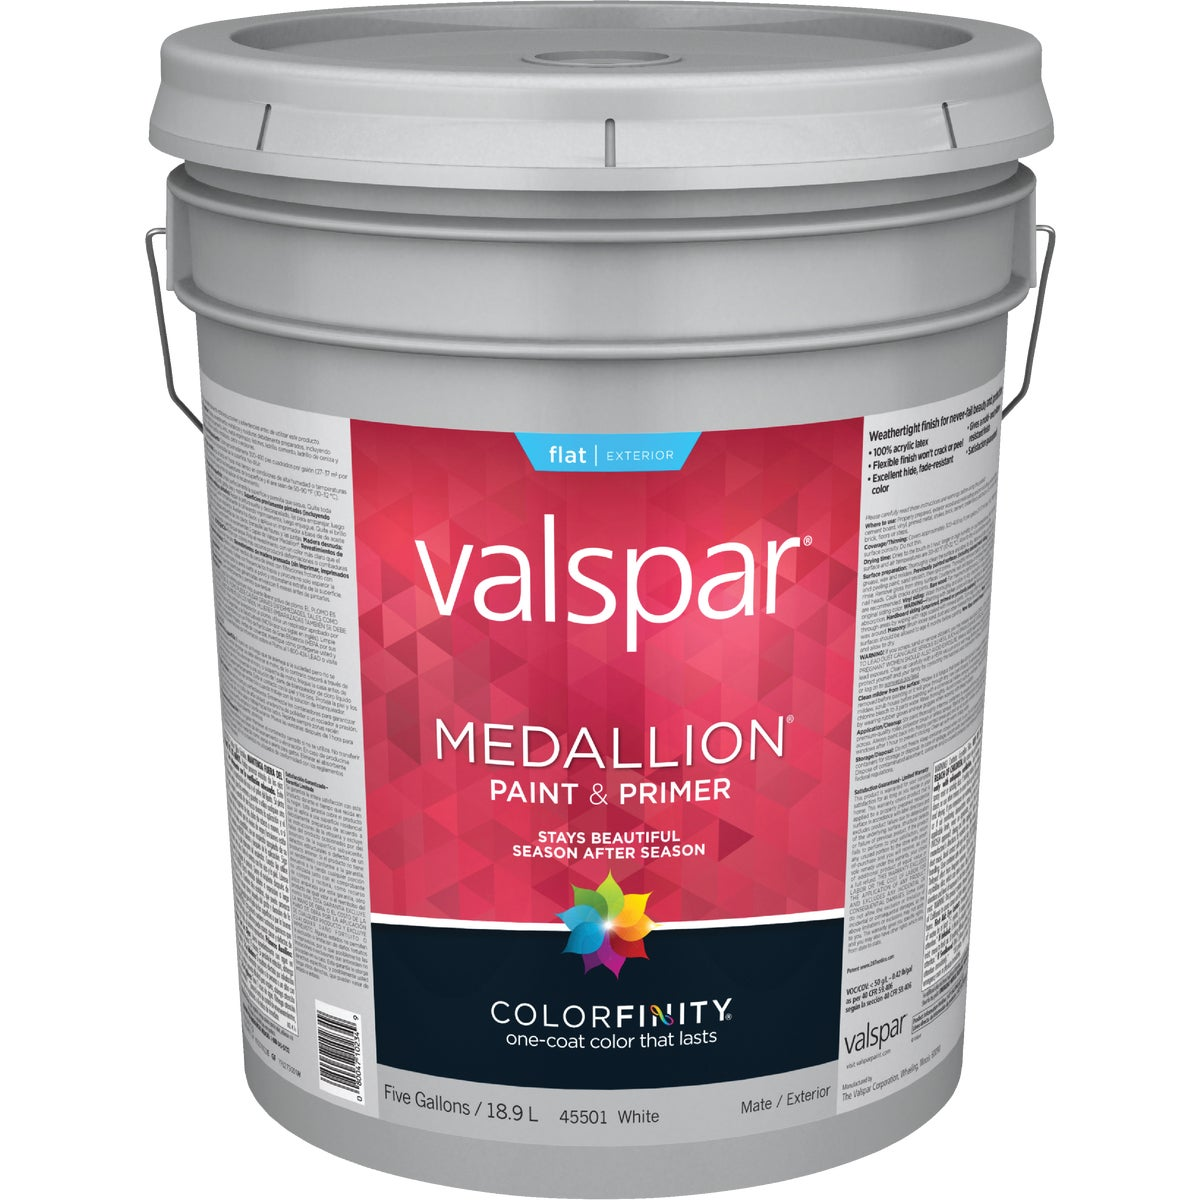 EXT FLAT WHITE PAINT - 027.0045501.008 by Valspar Corp